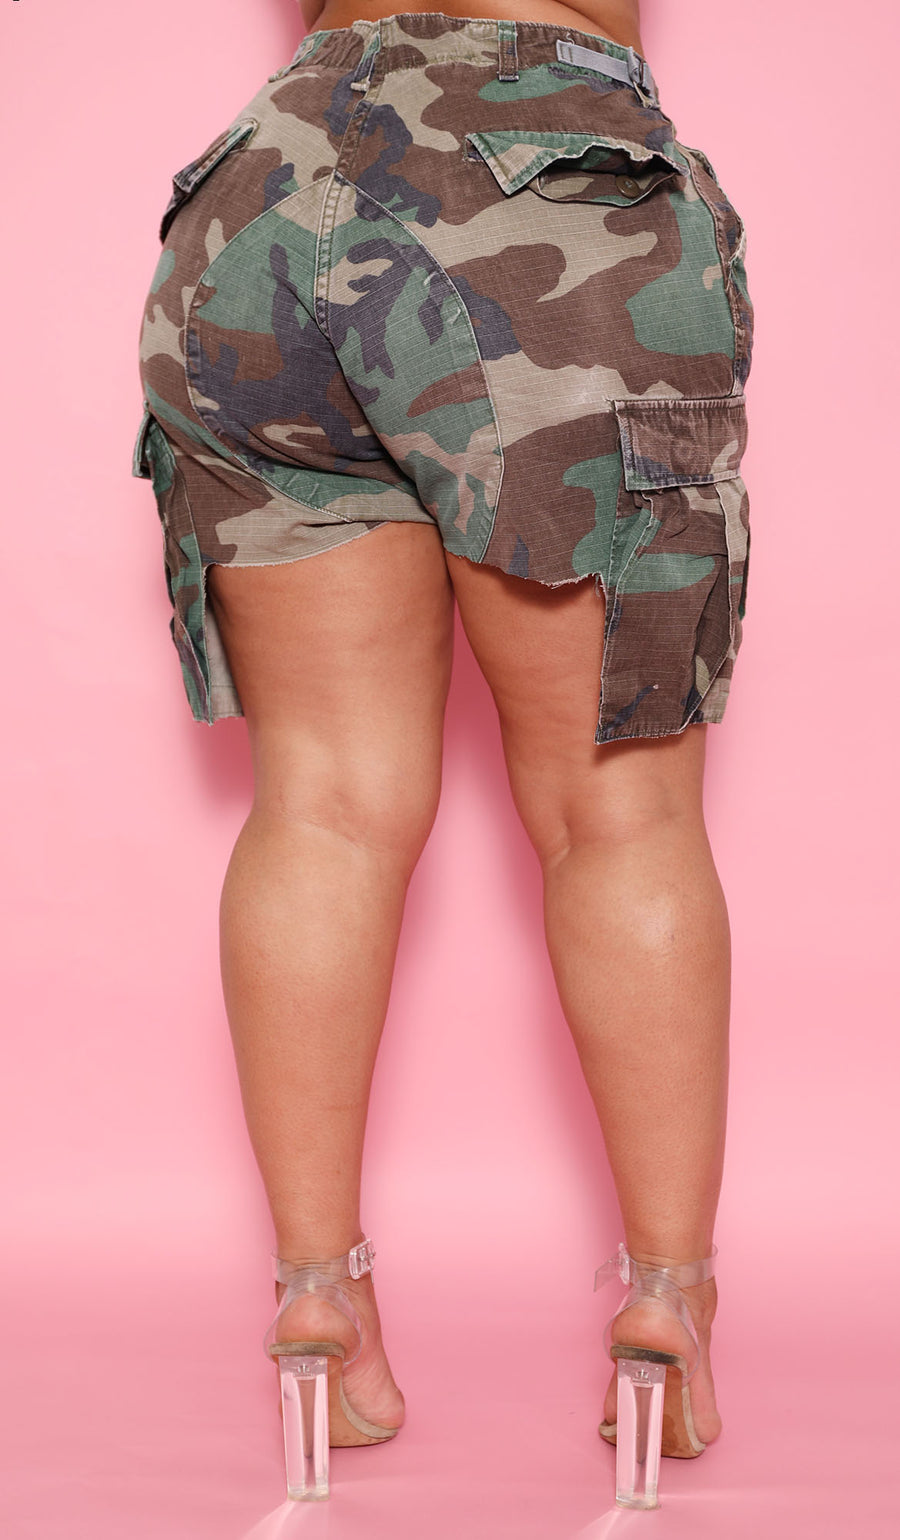 The Vintage Camo Girlfriend Short - Babes And Felines | Specializing in Fashionable Staple Pieces for Every Shape and Size